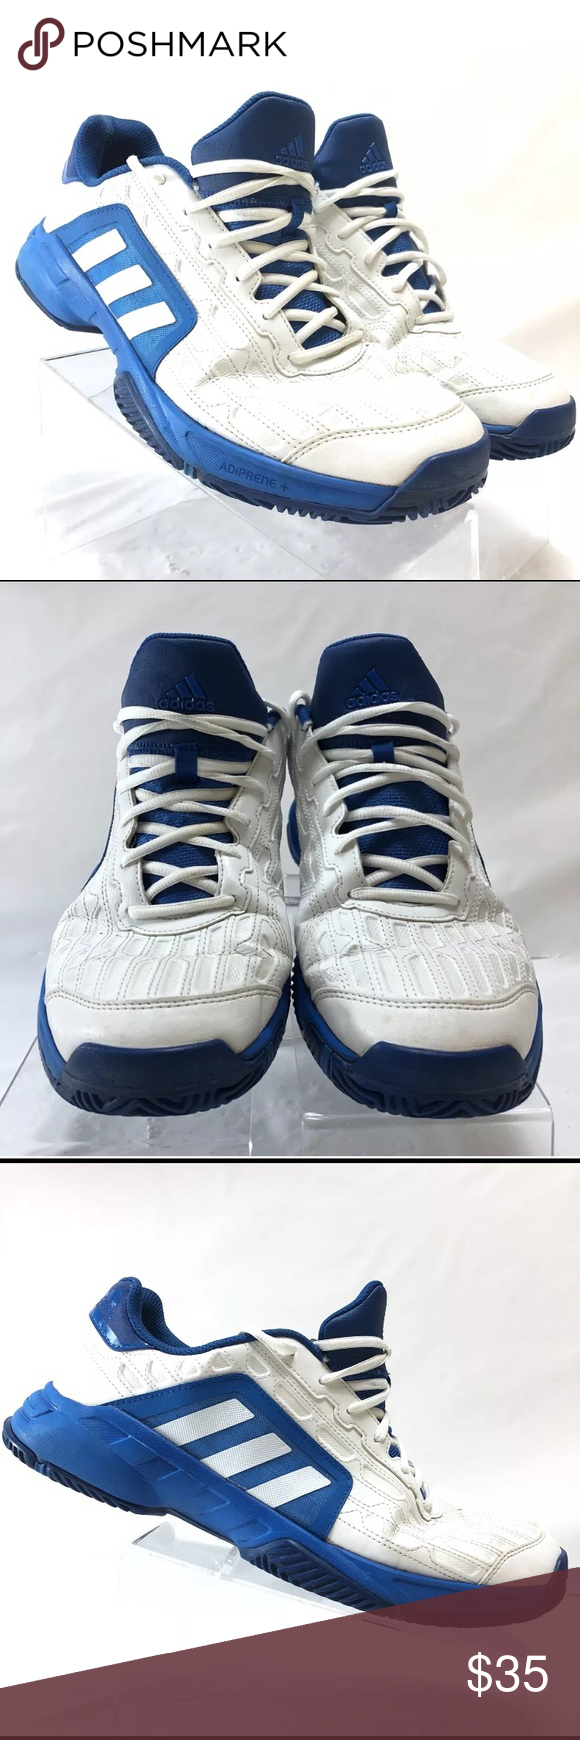 best website a4dd9 747b1 Adidas Men s Basketball Shoes Cross Trainers Adidas Men s Basketball Shoes  Cross Trainers PYV 702001 White Leather